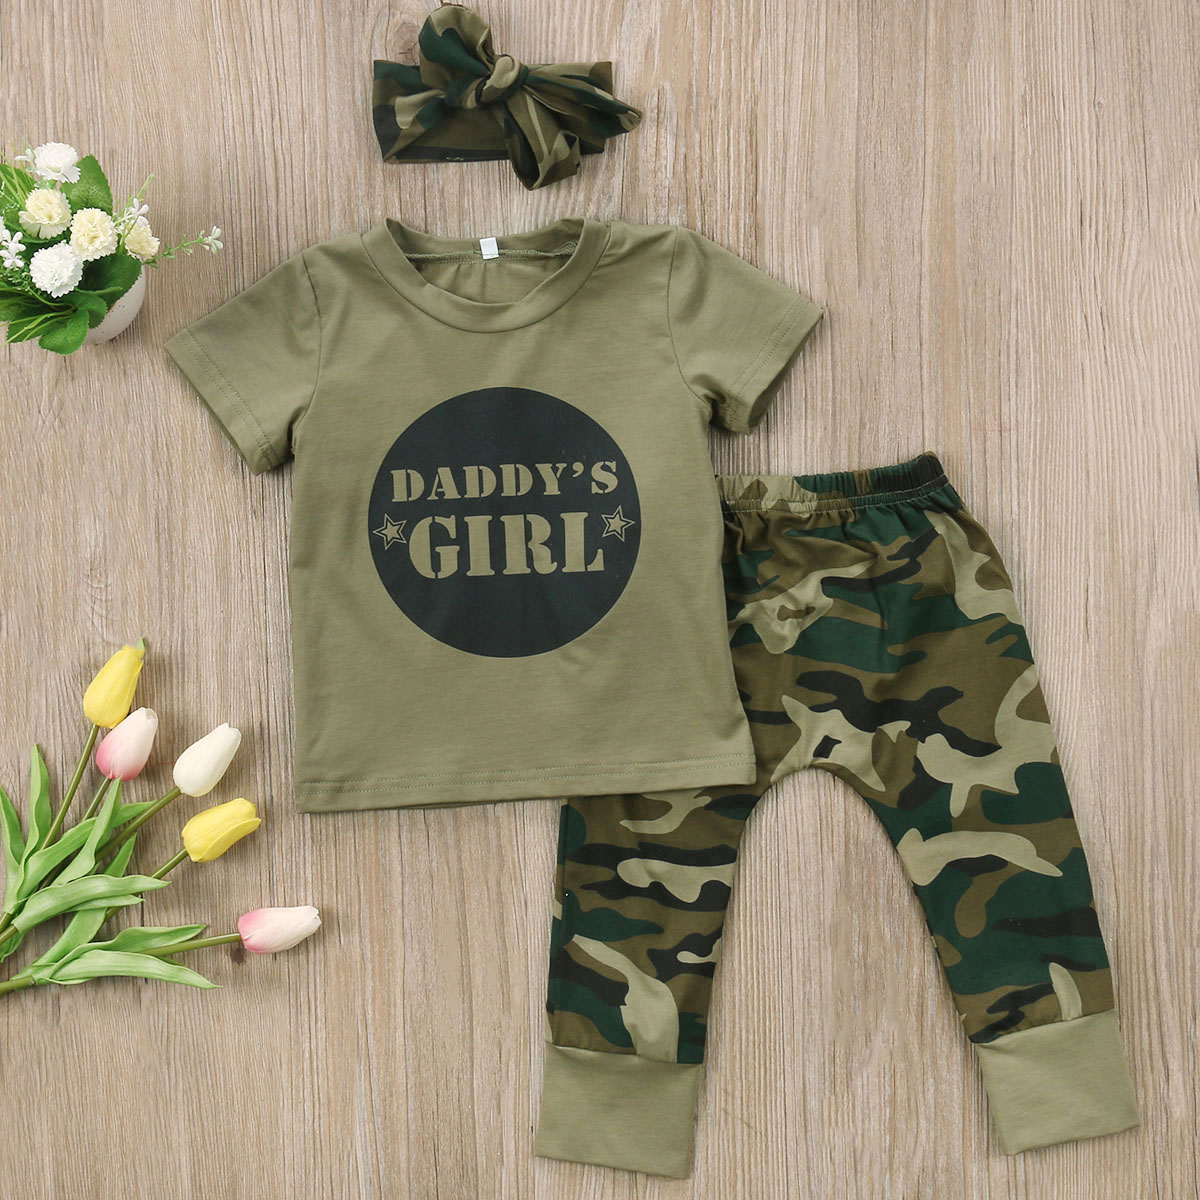 10bc3772f Casual Newborn Infant Baby Boy Girls Camo Clothes Set Brother Sister  Matching Outfit Kids Cotton T shirt Tops Pants Clothing Set-in Clothing  Sets from ...